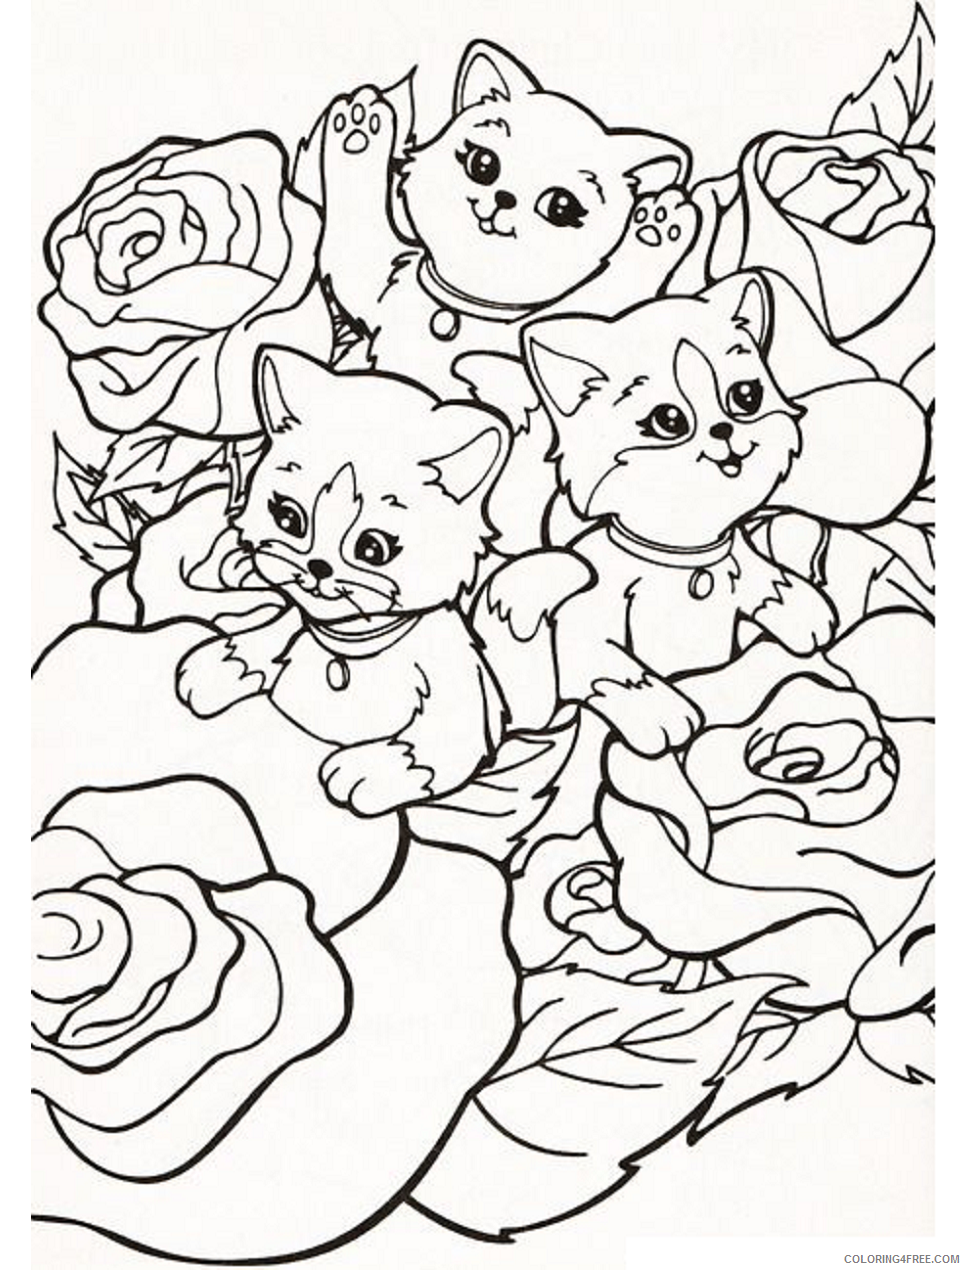 Lisa Frank Coloring Pages cats_lisa_frank Printable 2021 3856 Coloring4free